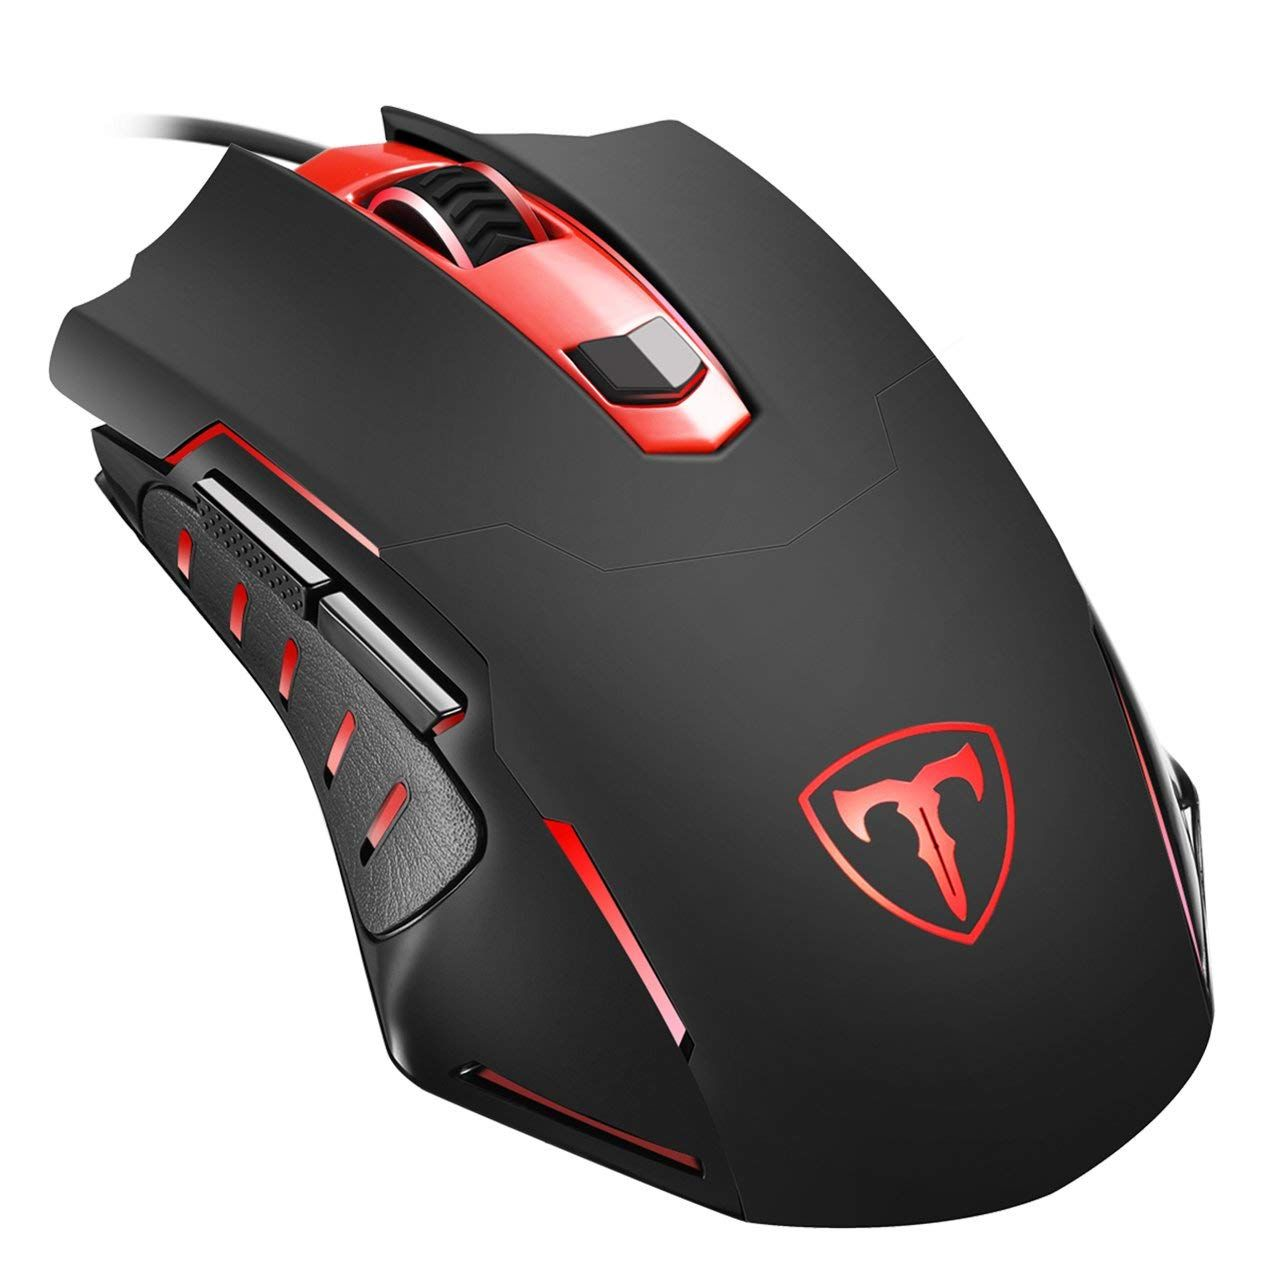 Black 6 Buttons 2400DPI Adjustable USB Wired Optical Gaming Mouse for Desktop PC Laptops - 1 6 Buttons 2400DPI Adjustable USB Wired Optical Gaming Mouse for Desktop Keyboards /& Mouse Mouse -